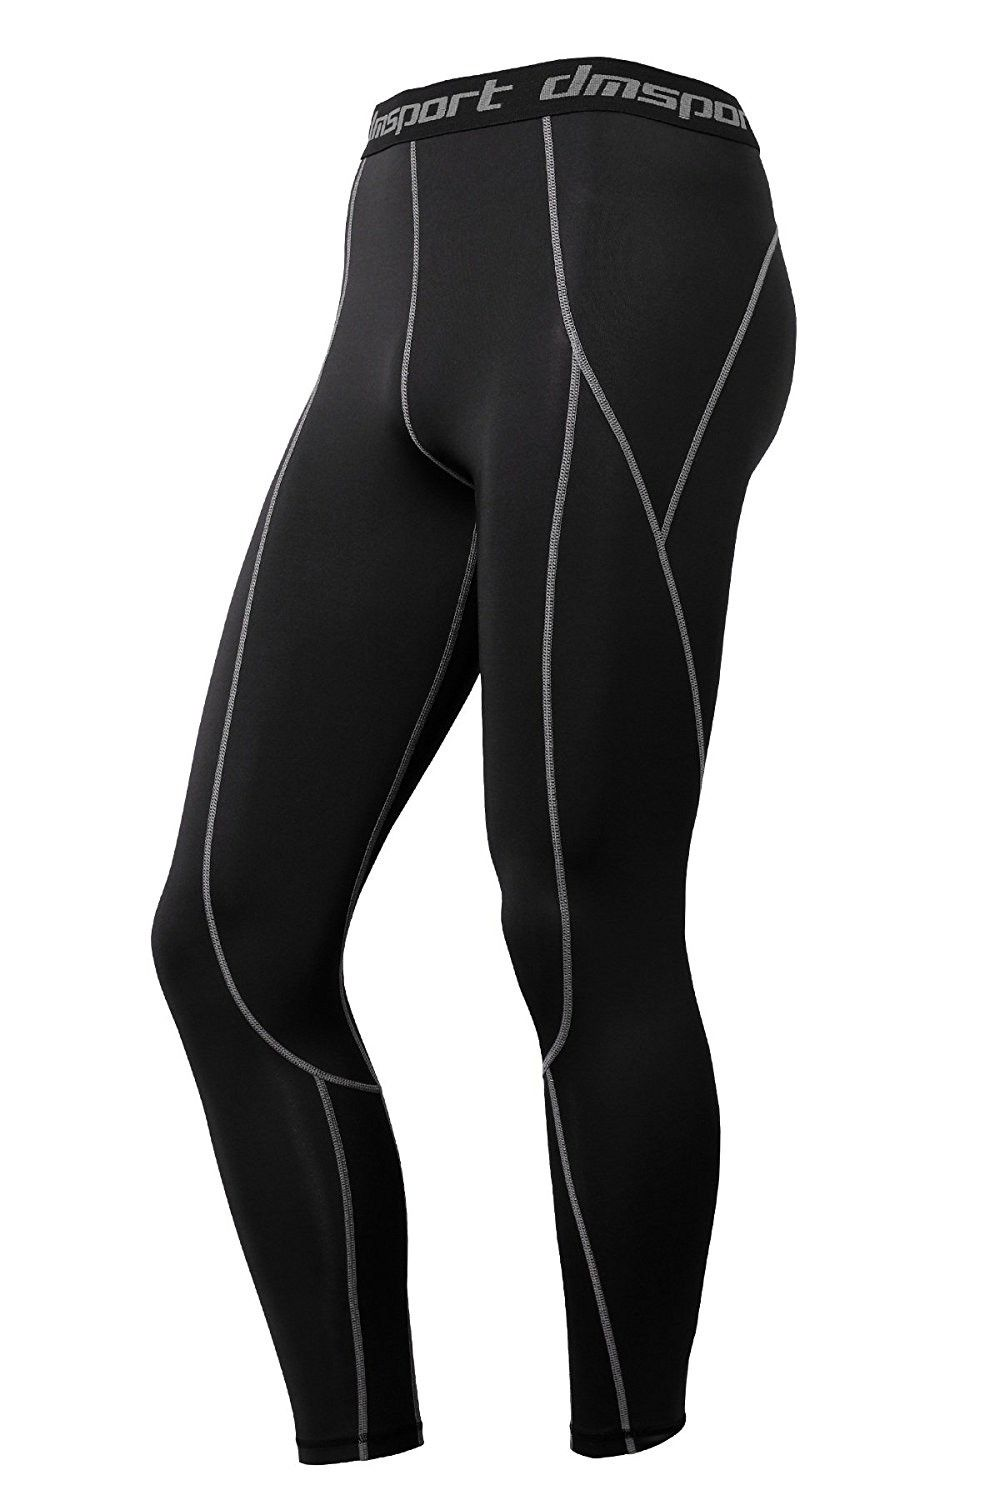 ab3fd7c687 Men's Clothing, Active, Active Pants, Men's Compression Waistband Baselayer  Sports Tights Leggings - CP12JKBT5V1 #men #fashion #clothing #style #outfits  ...